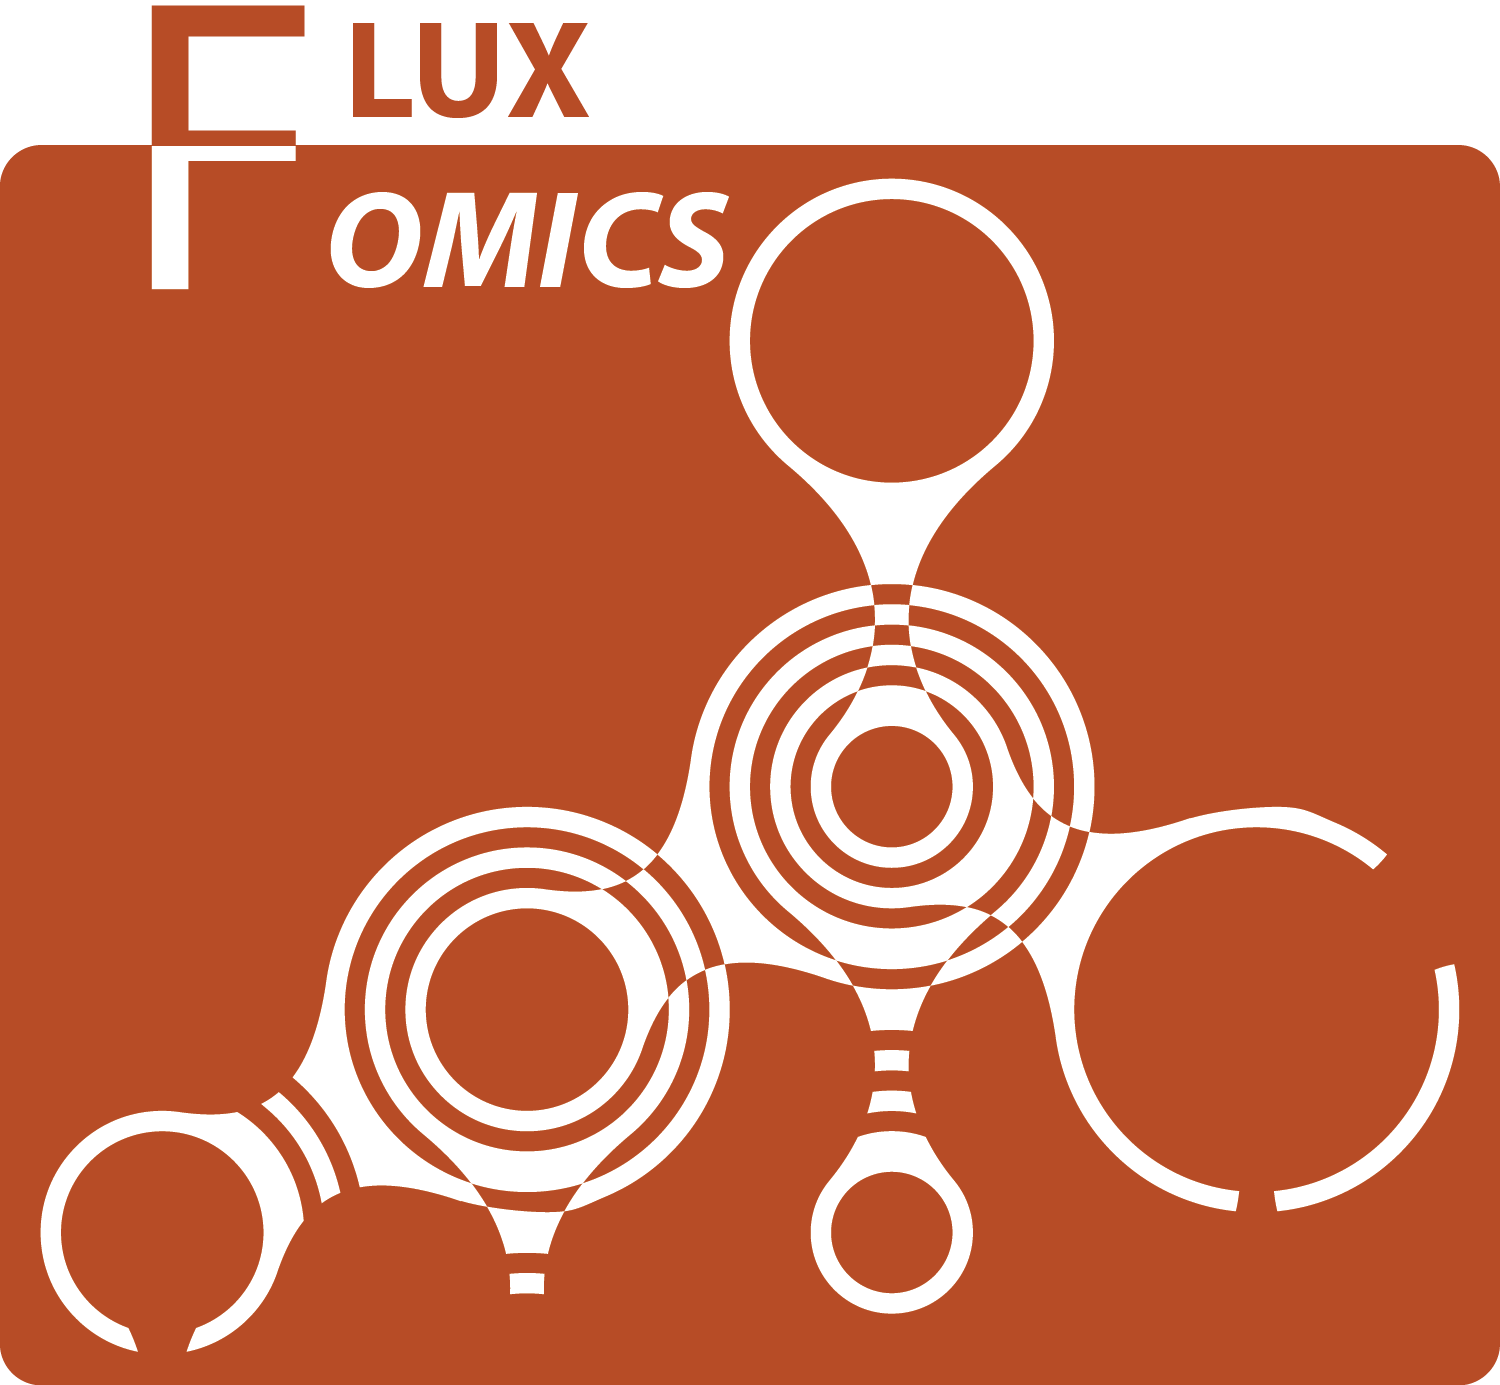 Icon for fluxomics specialist